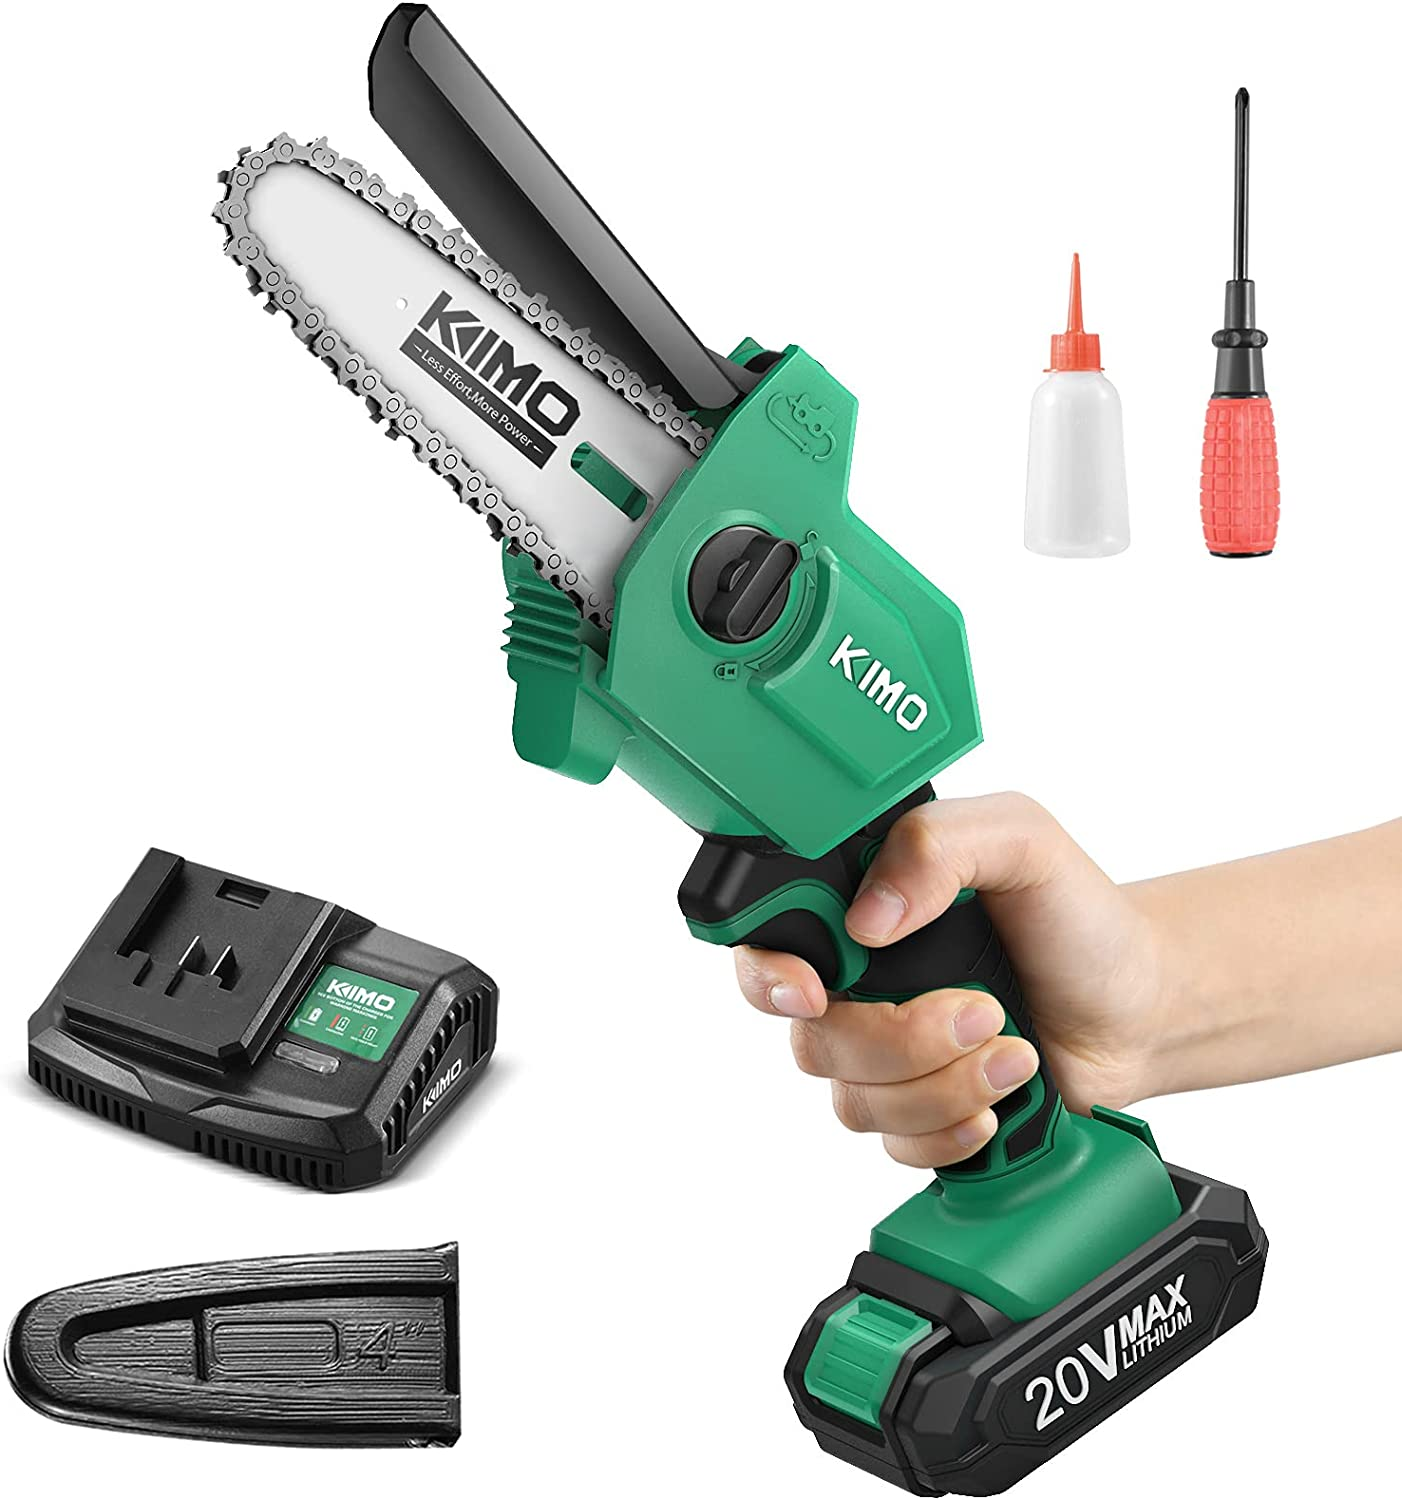 Mini Chainsaw - KIMO 2lbs Ultra-Lightweight Upgraded Cordless Chainsaw, 4-Inch w/ 20V 2.0Ah Battery&Charger, 13.2ft/s Speed, One-Handed Electric Chain Saw for Garden Tree Trimming Branch Wood Cutting